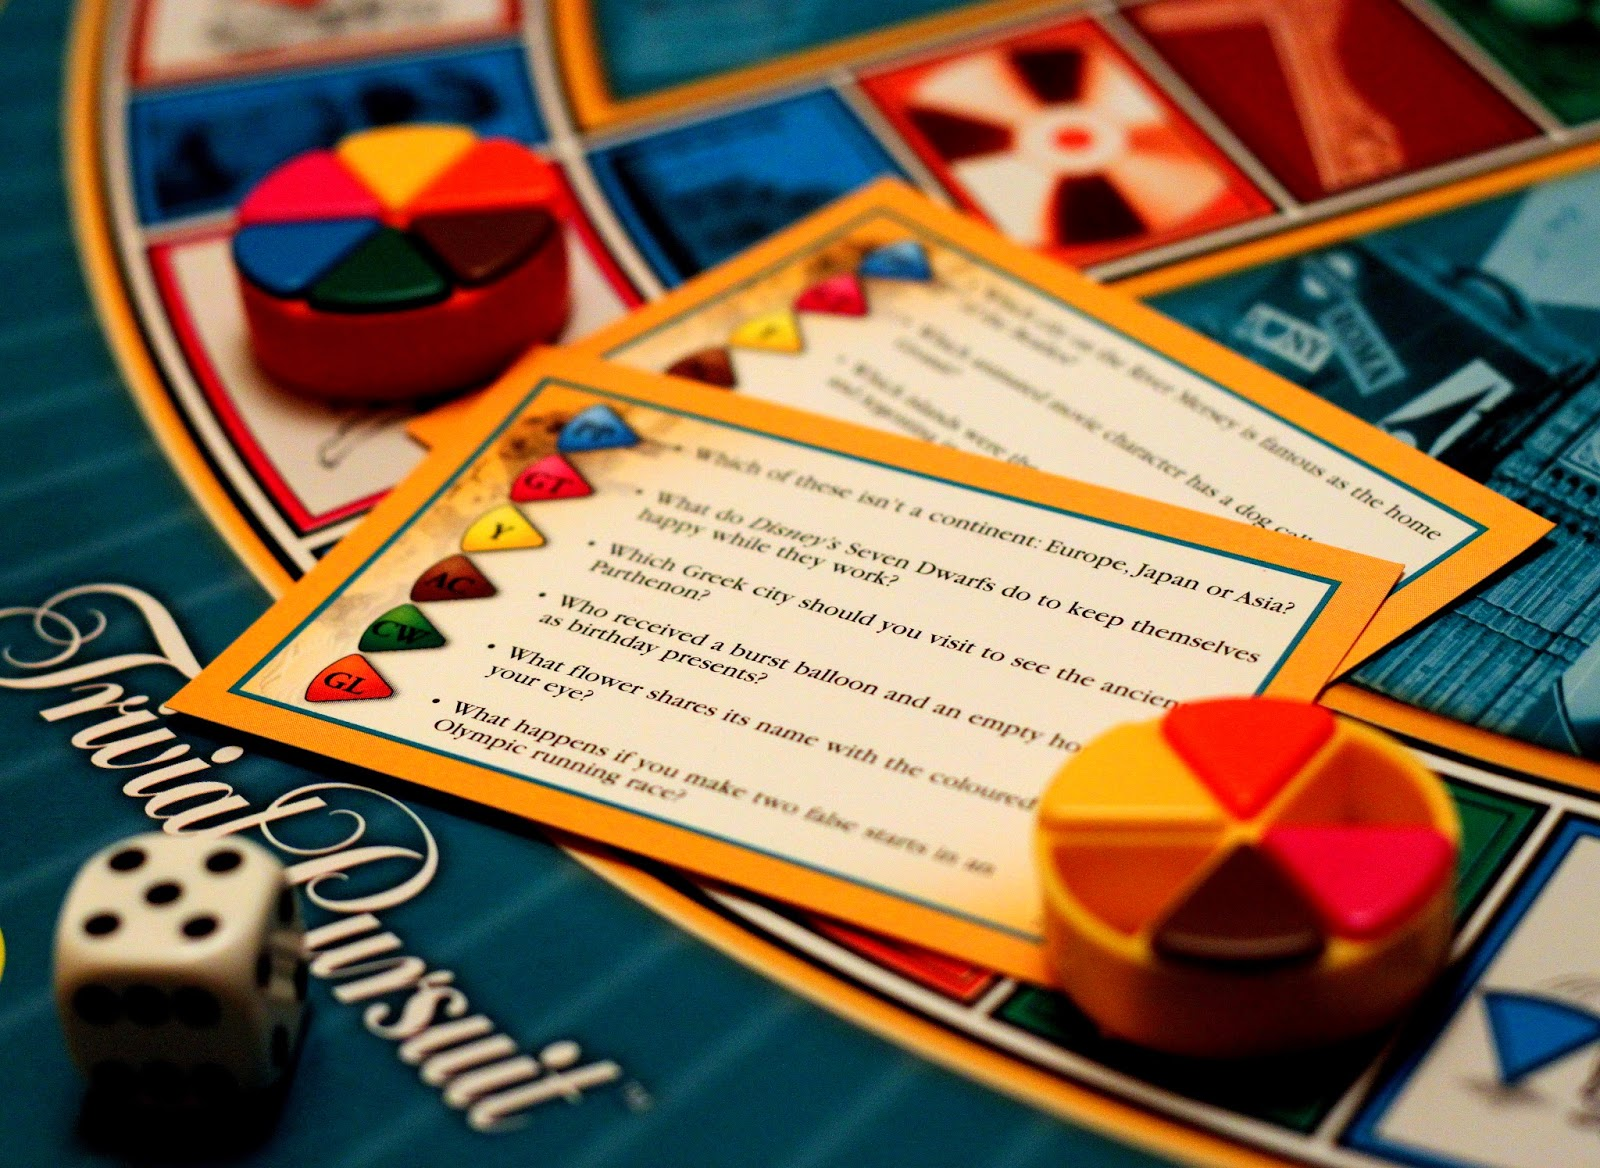 The invention of Trivial Pursuit